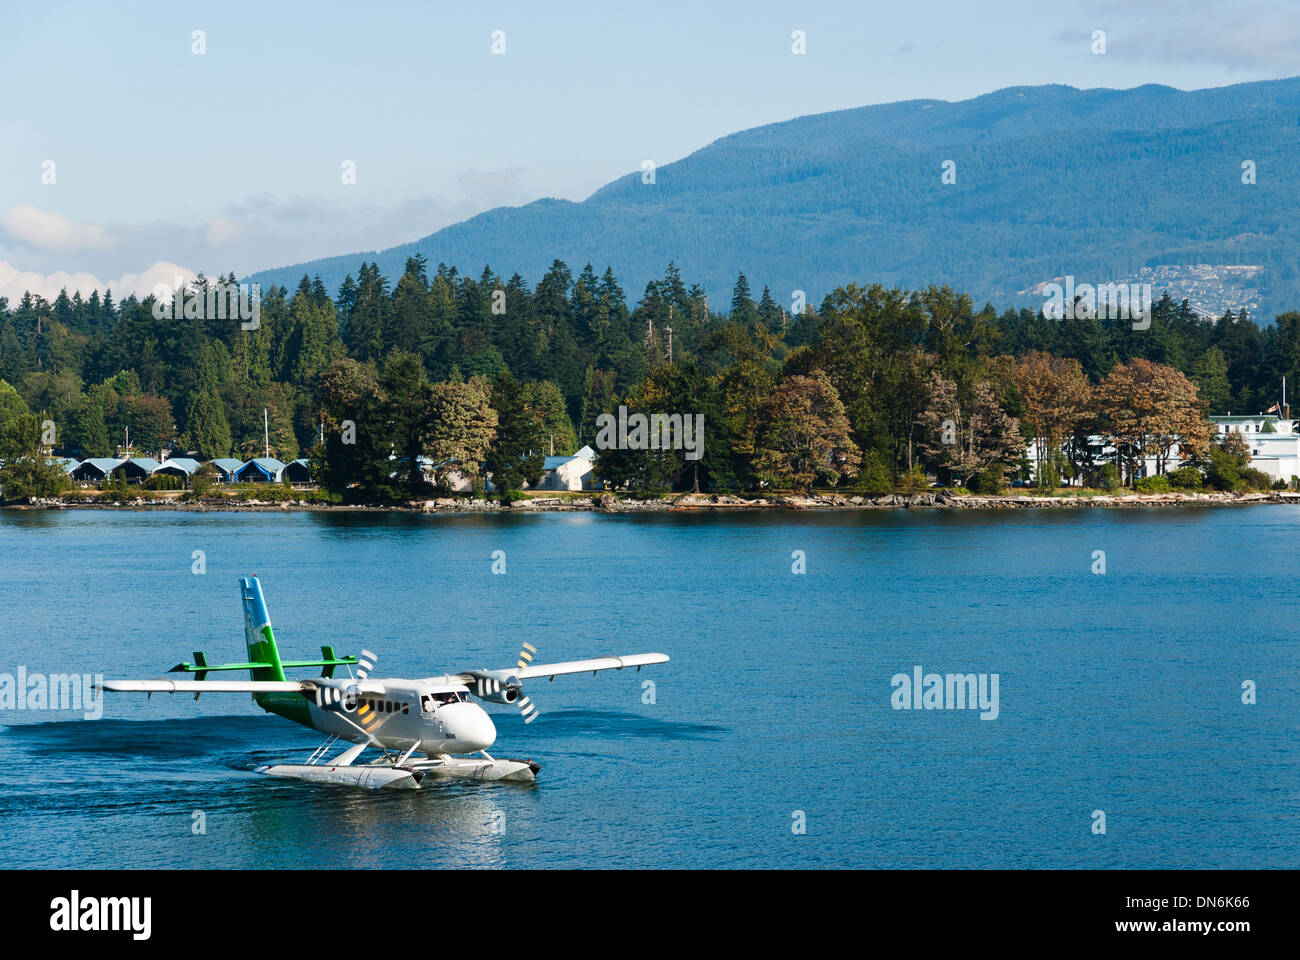 Westcoast Air DHC-6 DeHavilland Twin Otter getting ready for take-off in Vancouver, British Columbia, Canada. Stock Photo